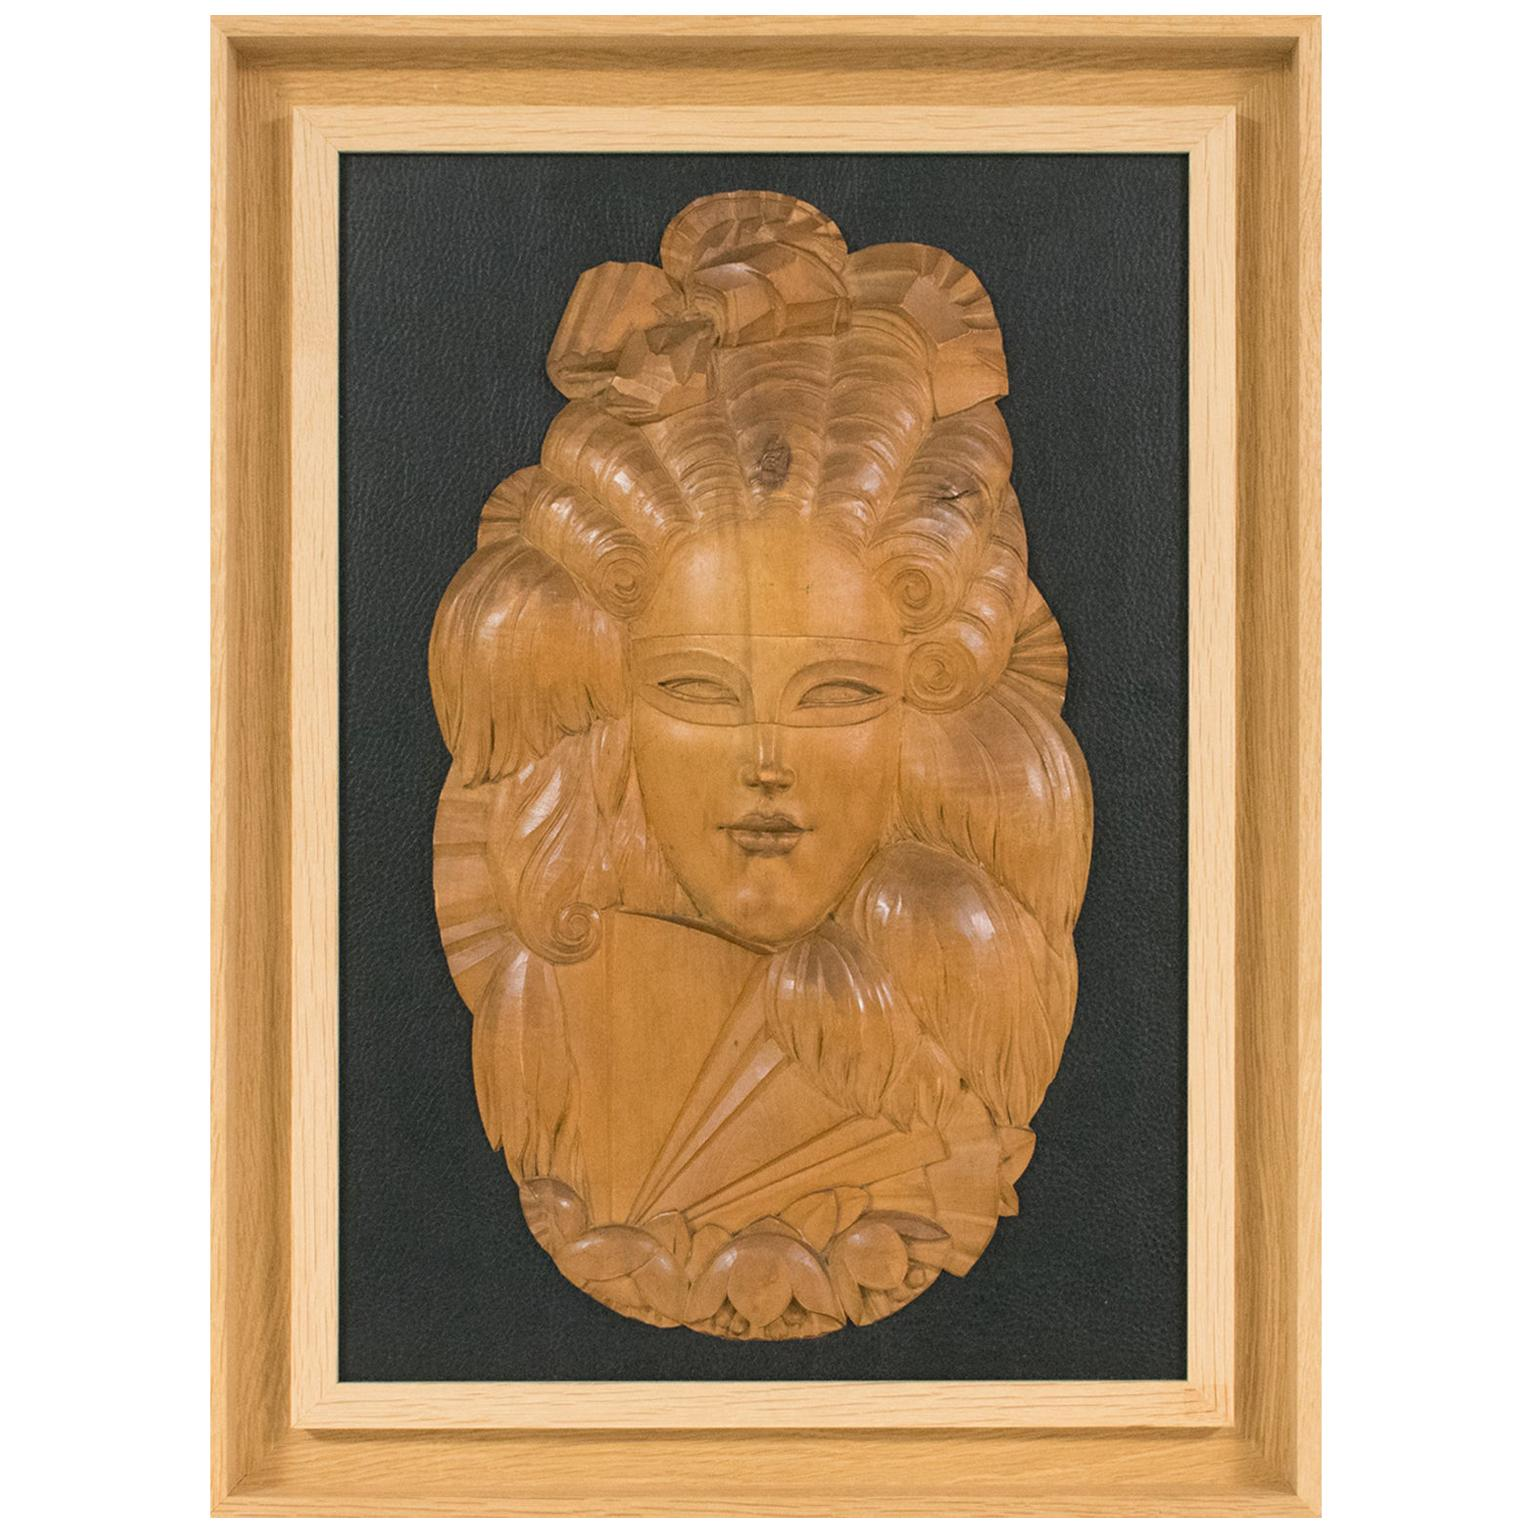 Art Deco Handcrafted Wood Panel Wall Sculpture Venetian Mask